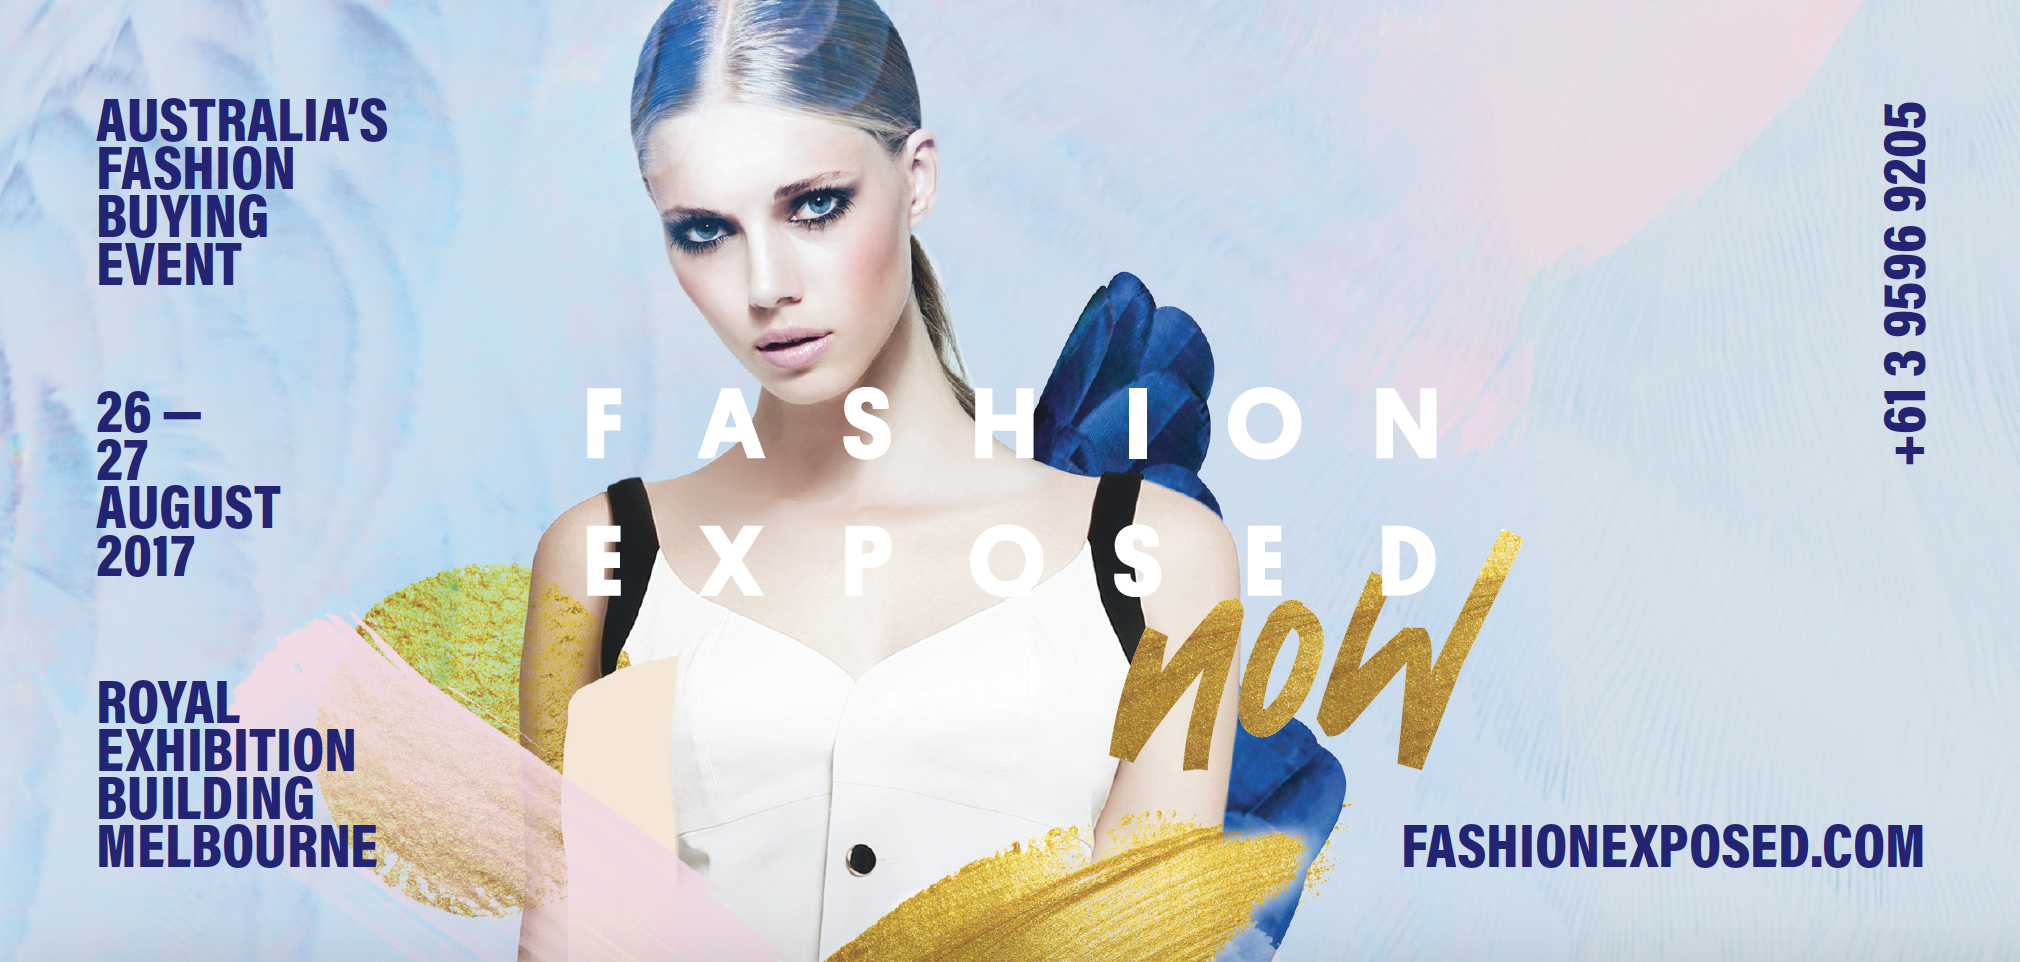 Fashion exposed trade show 73